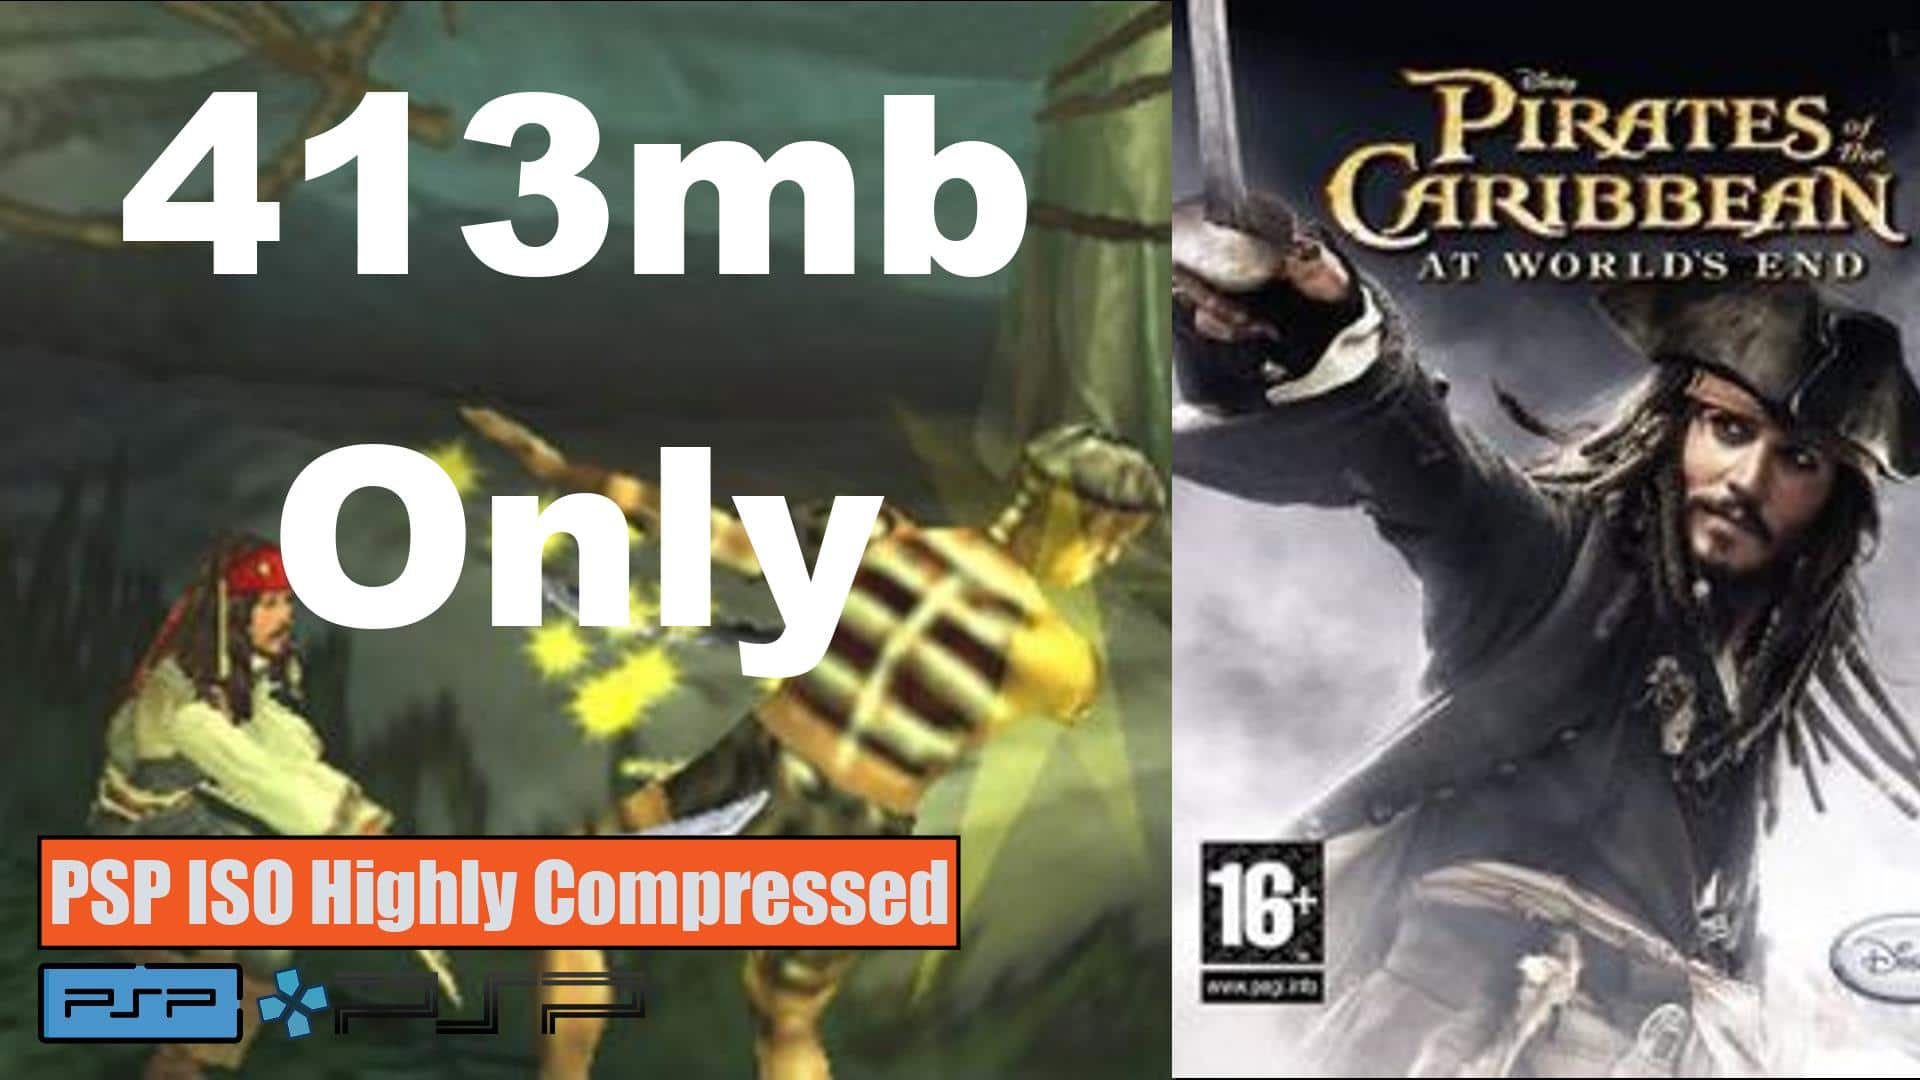 Pirates of The Caribbean at World's End PSP ISO Highly Compressed